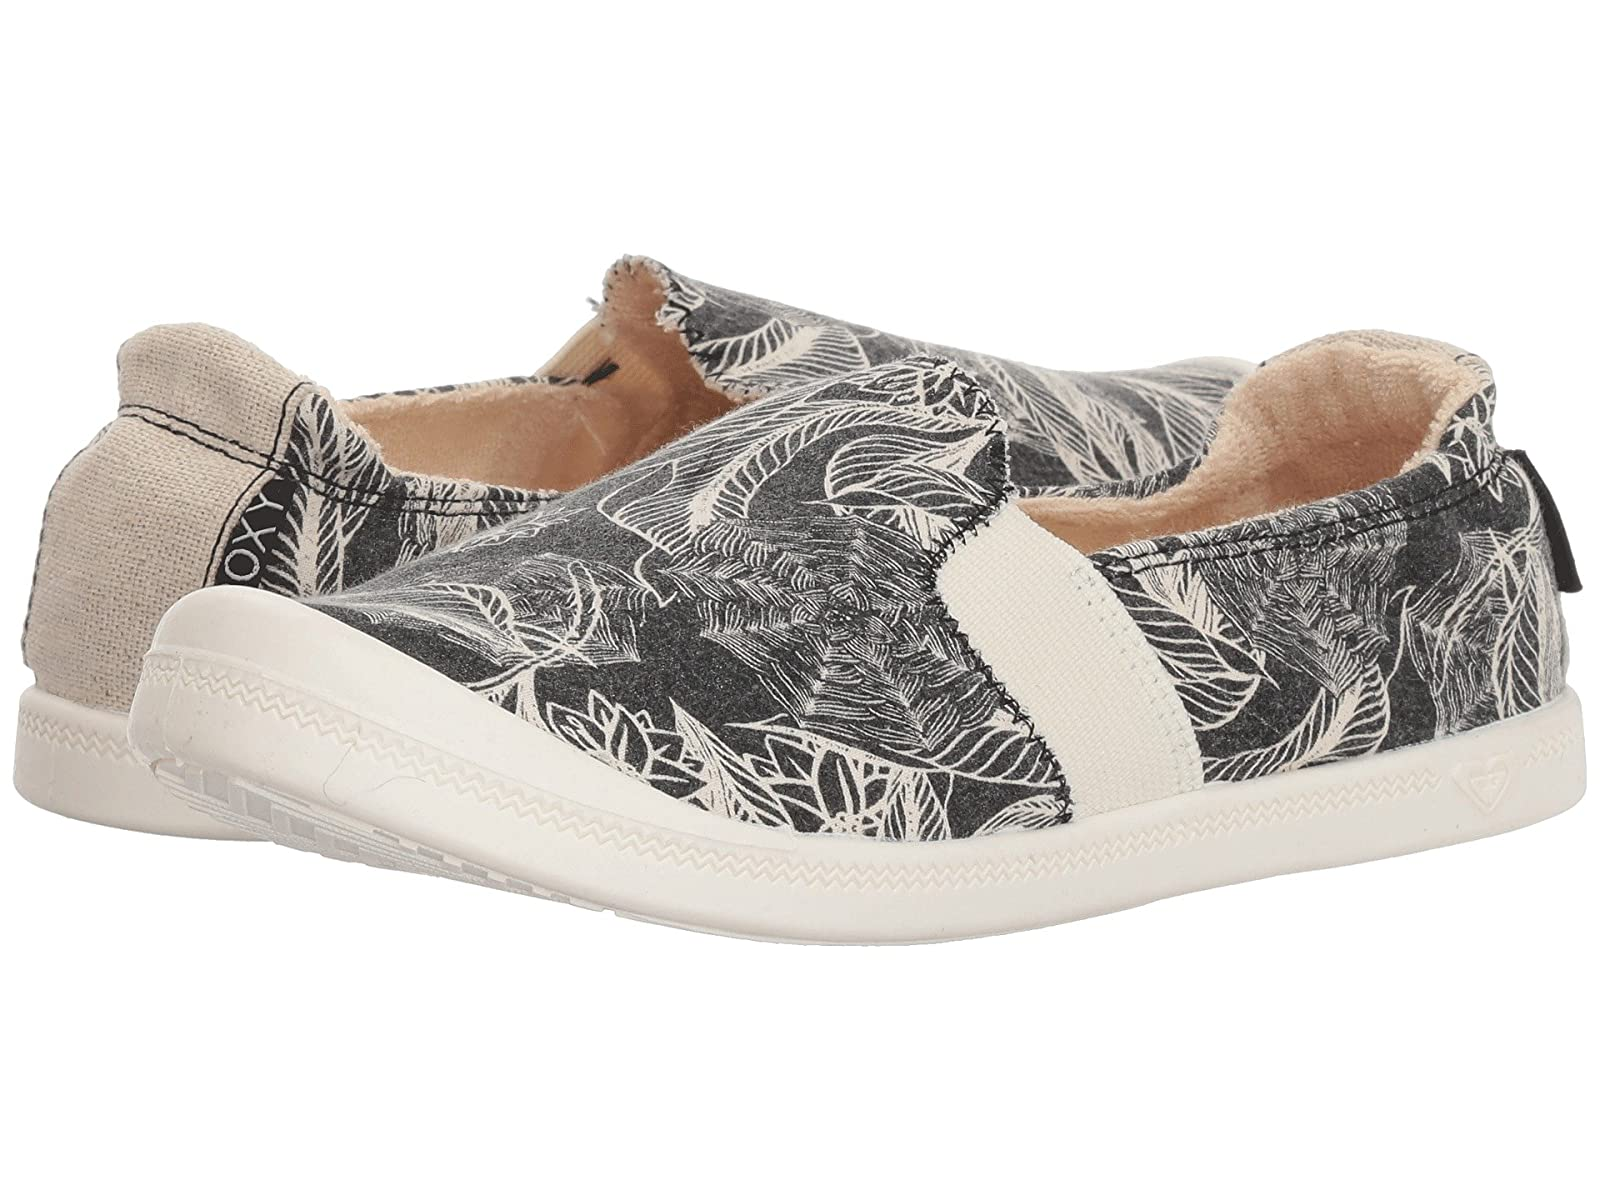 Roxy Palisades IIAtmospheric grades have affordable shoes